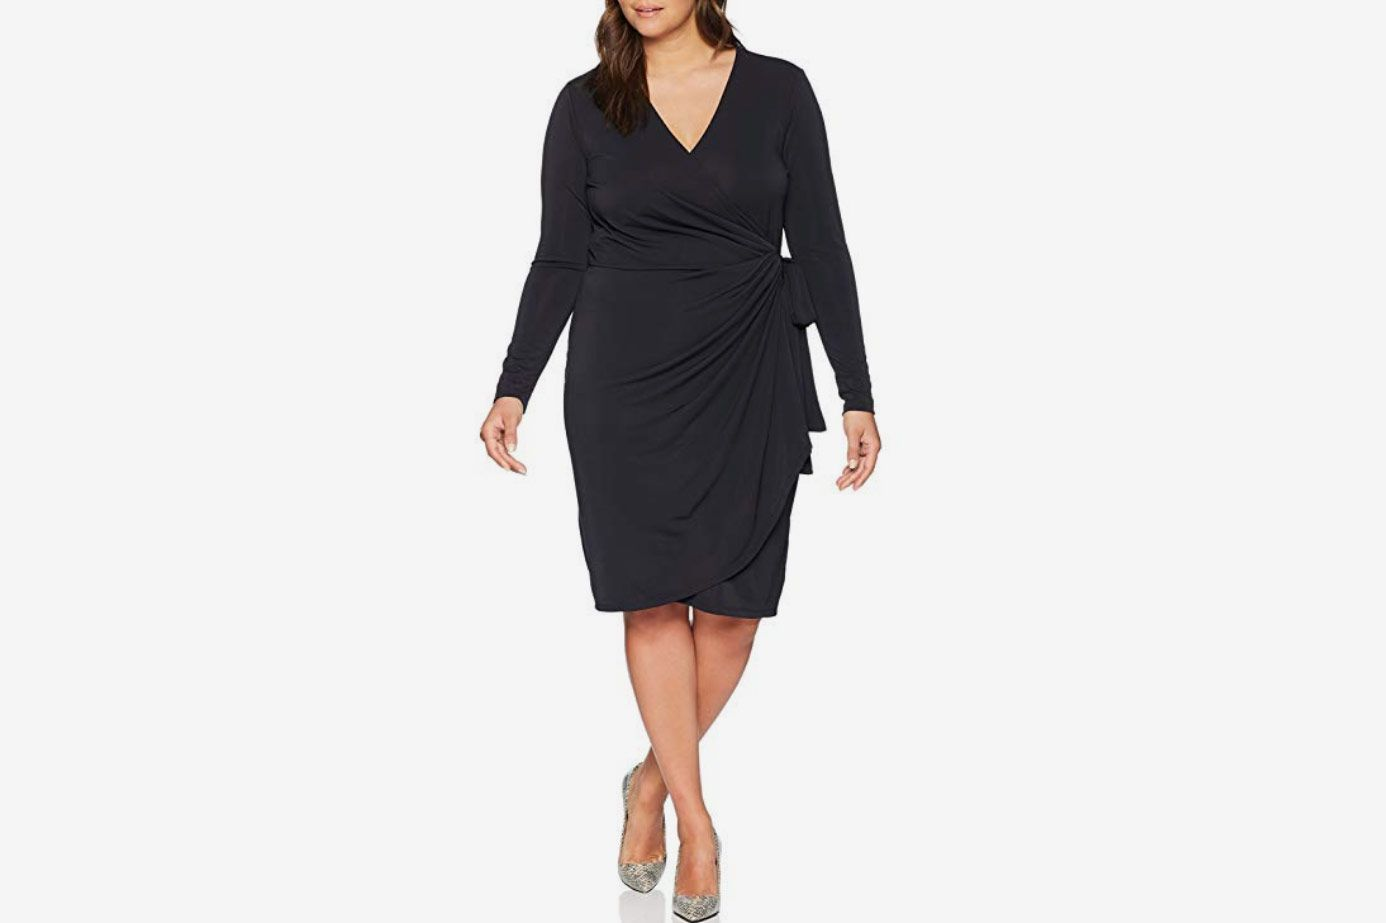 Lark & Ro Women's Plus Size Long Sleeve Wrap Dress